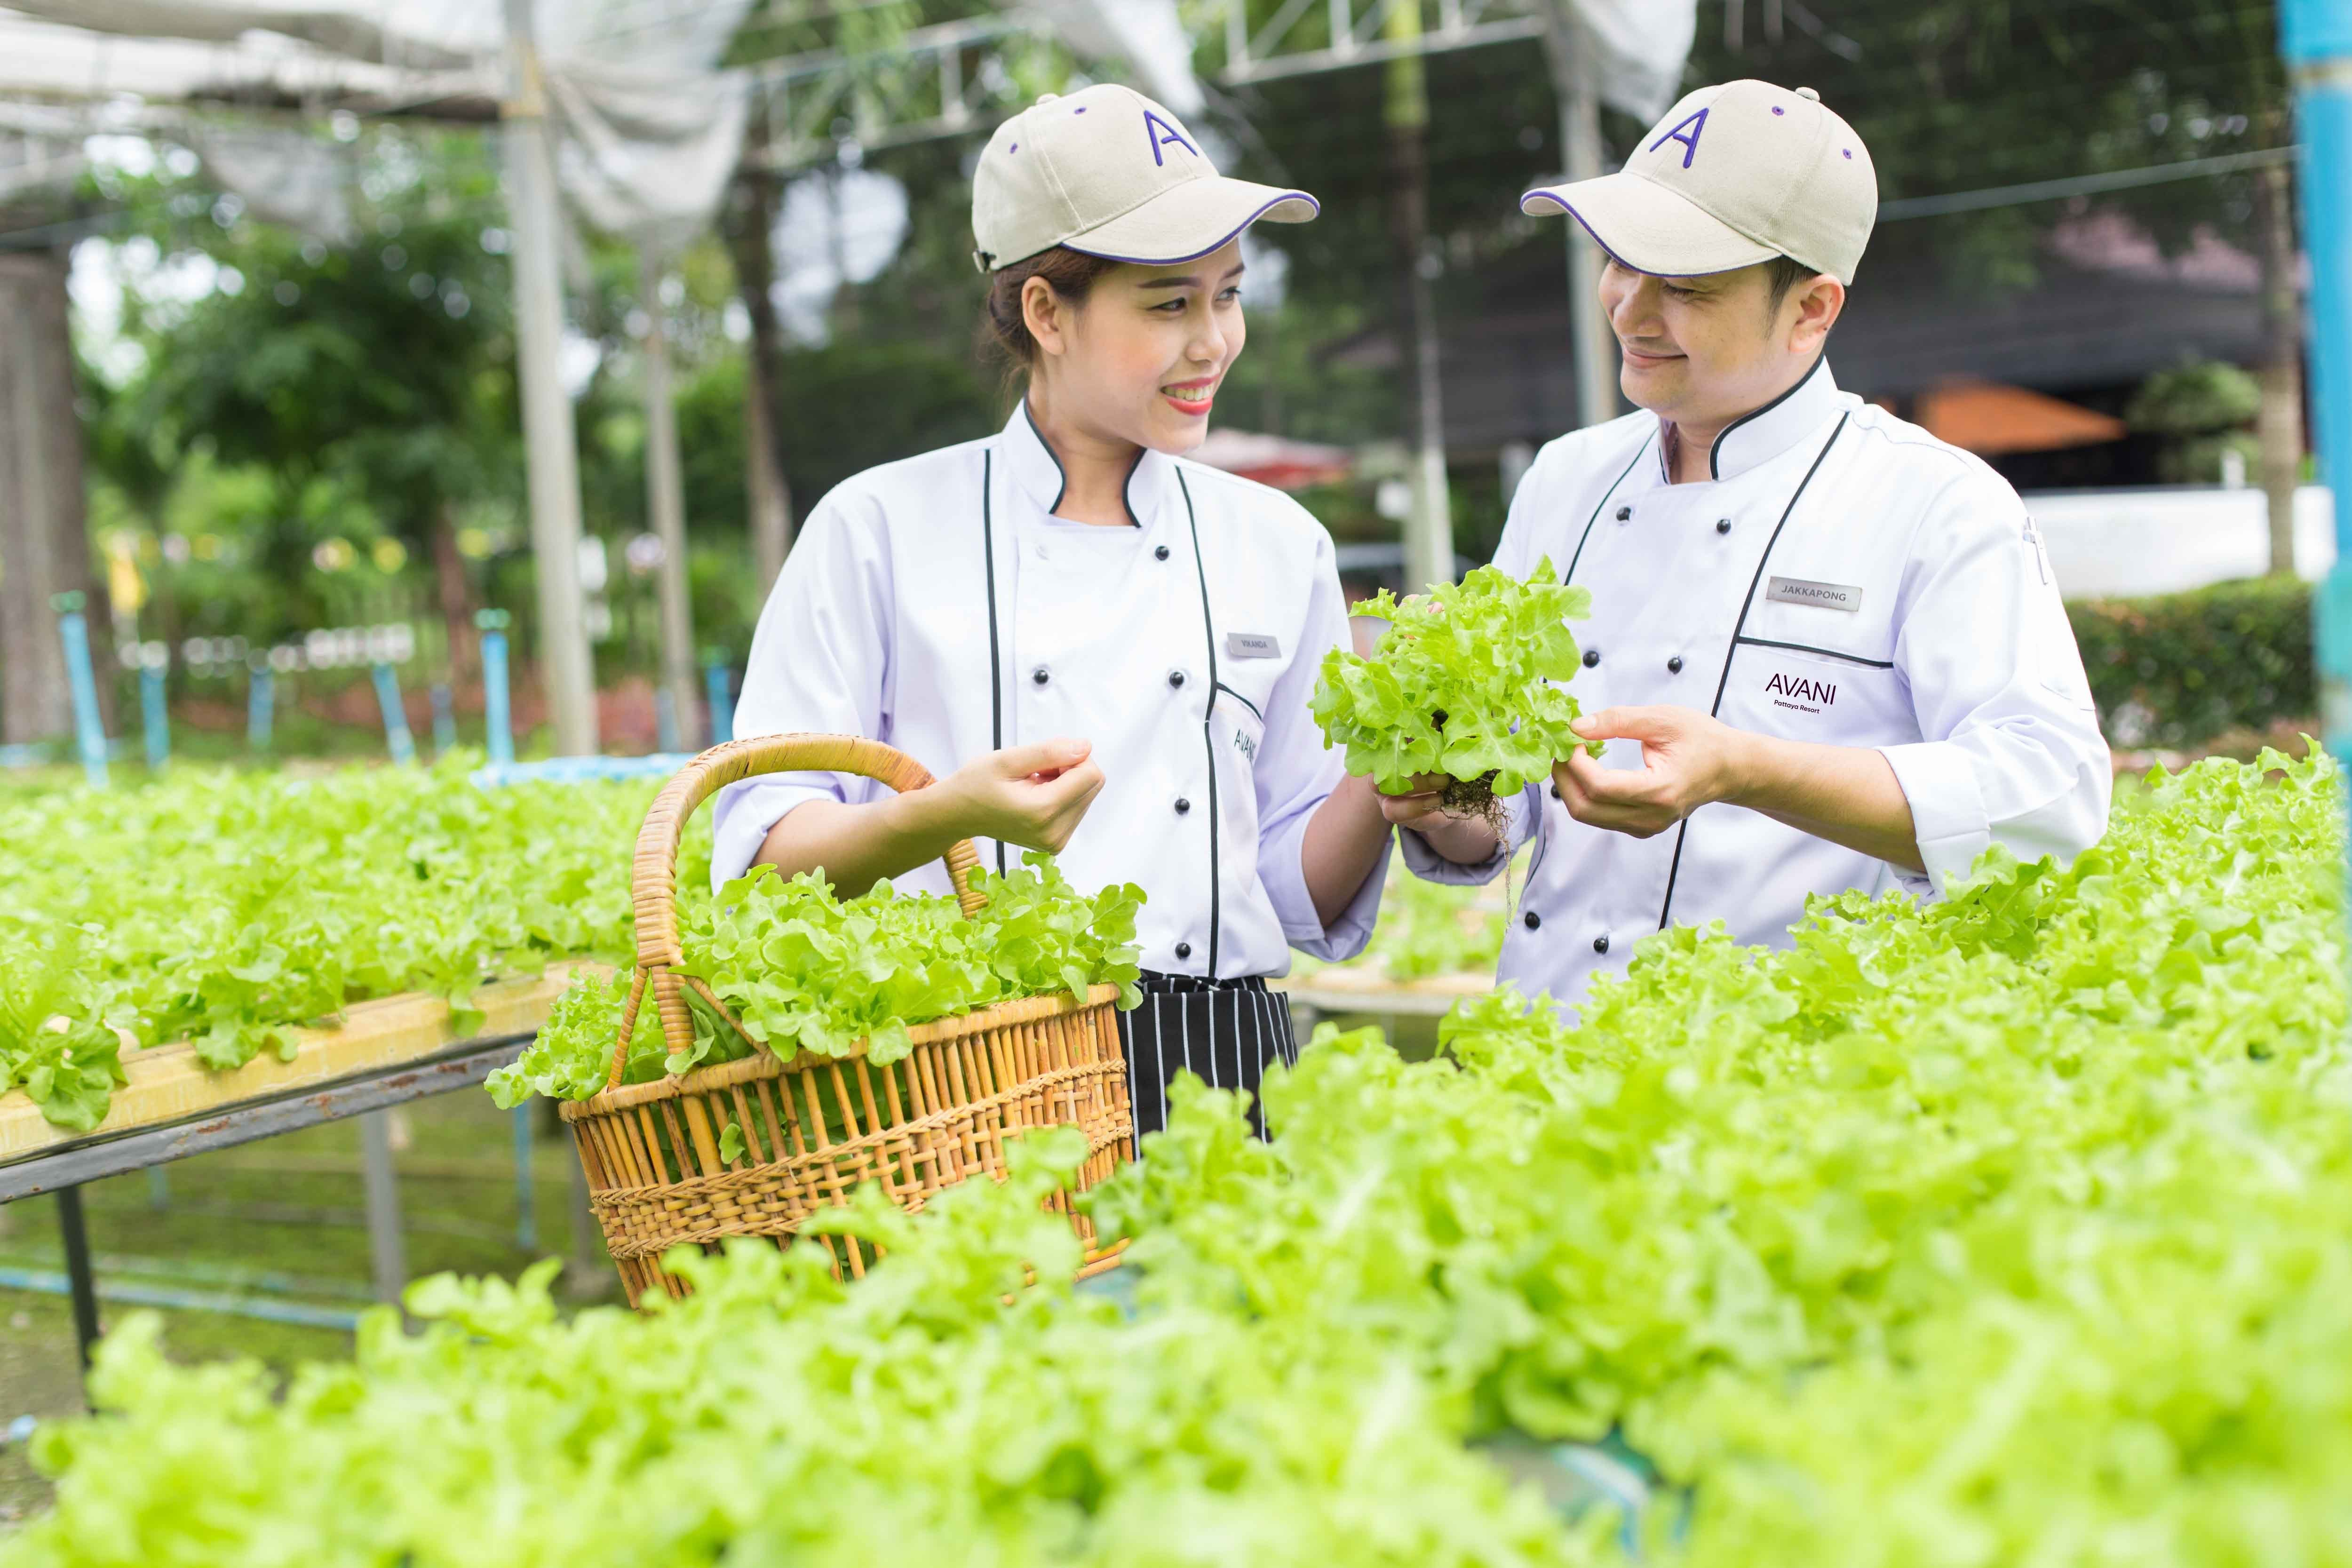 Avani Pattaya Resort - Hydroponics Farm Chefs